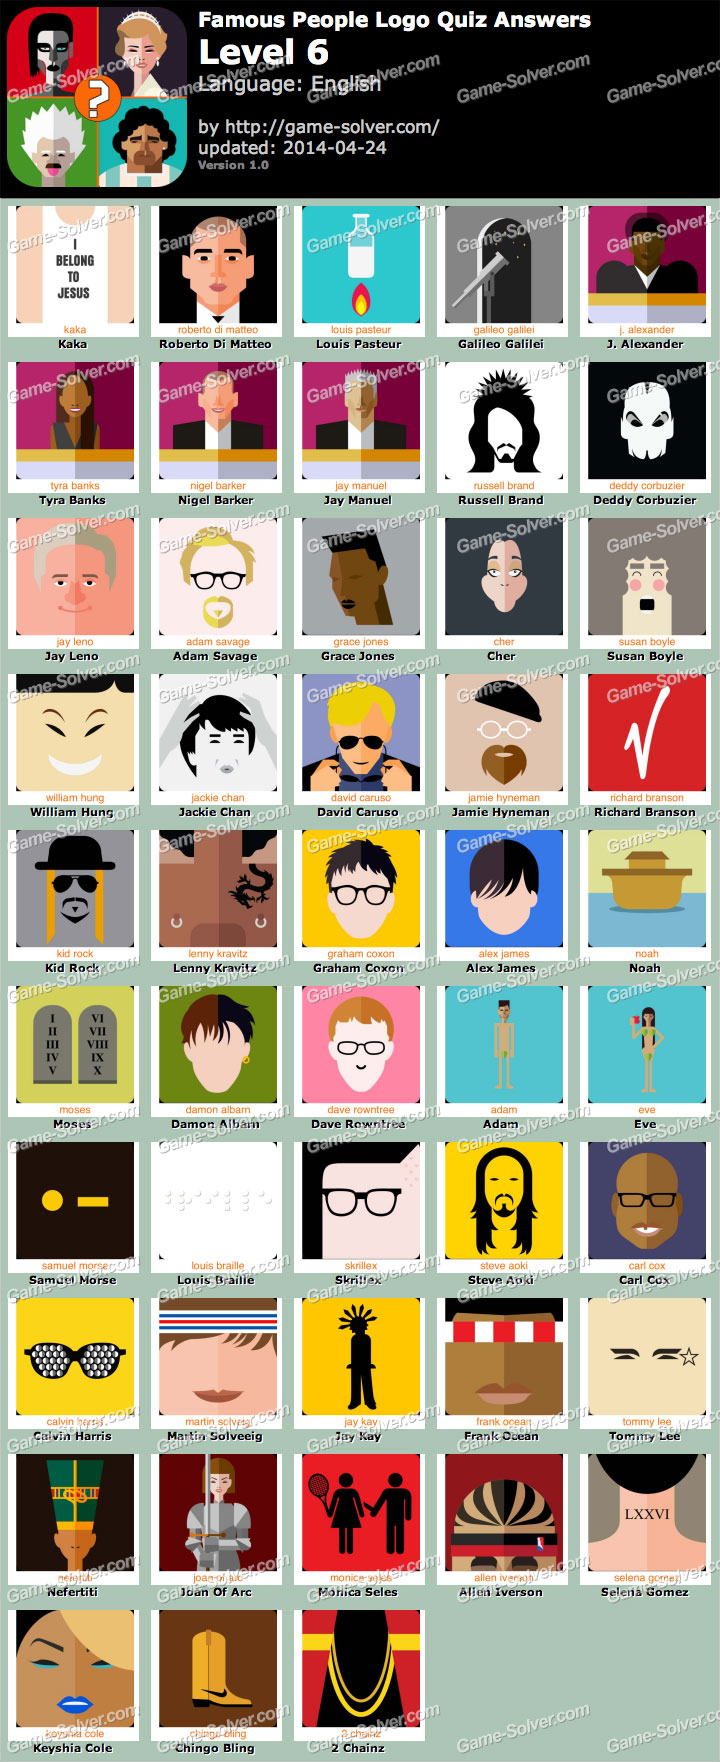 Famous People Logo Quiz Level 6